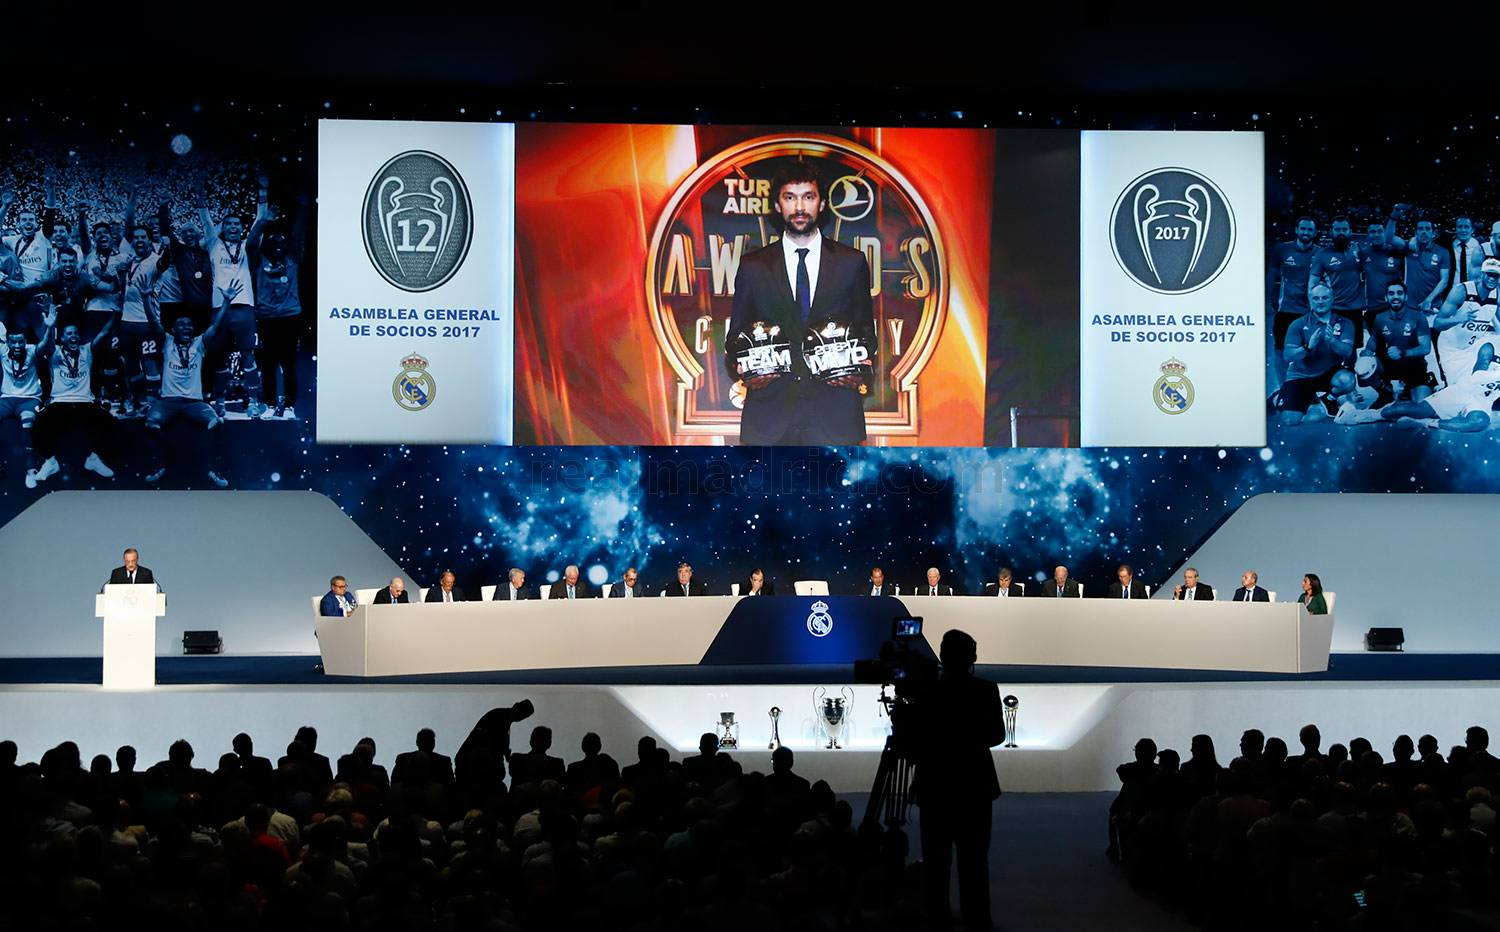 Real Madrid - Asamblea General 2017 - 01-10-2017